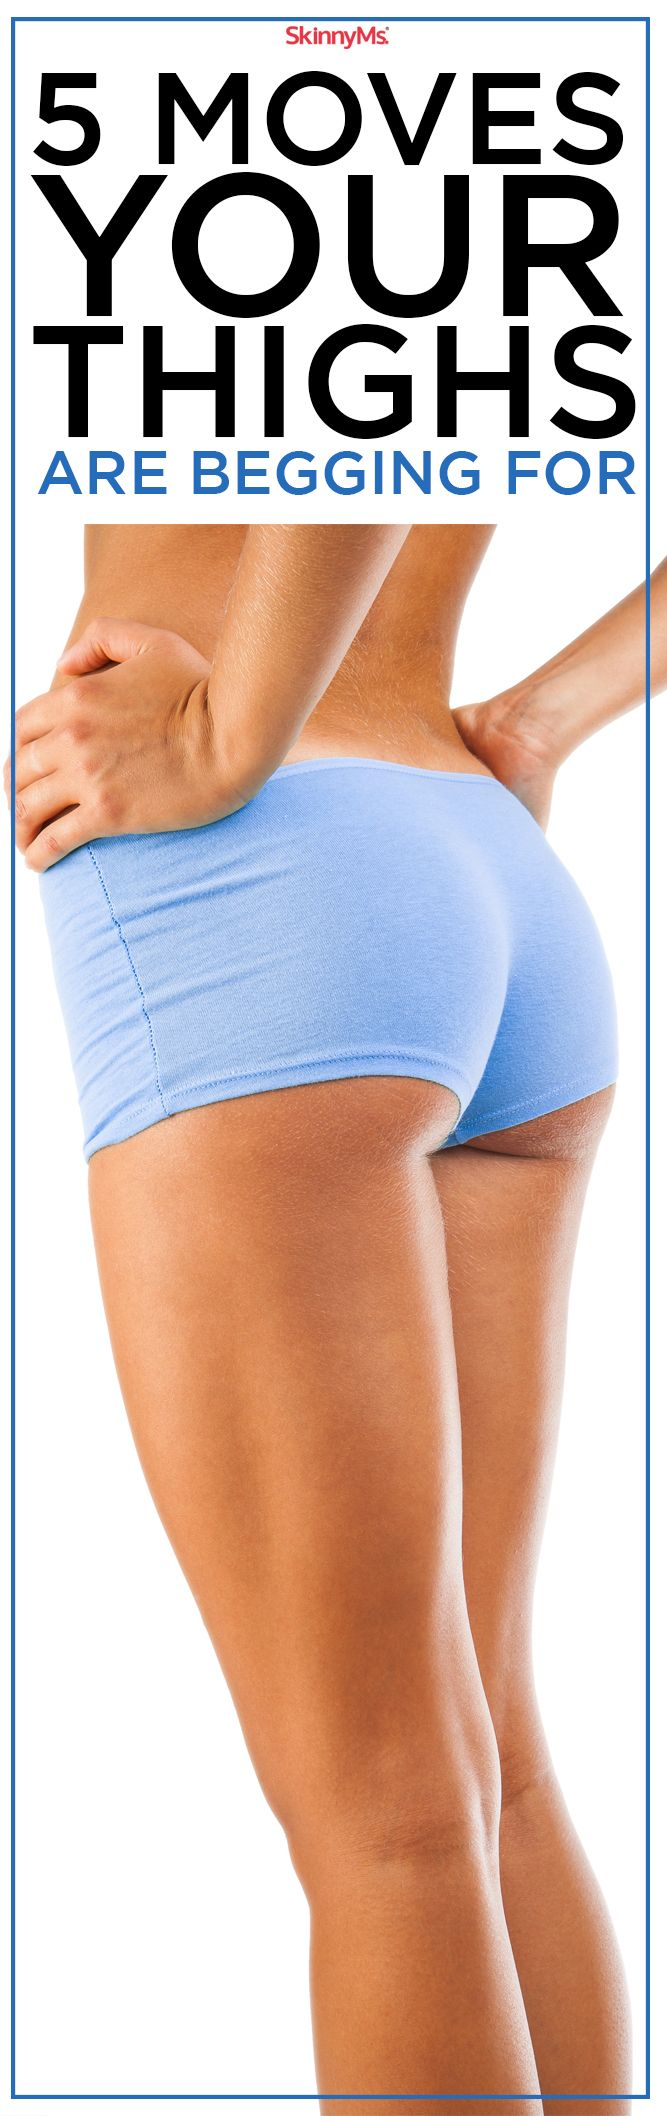 This slimming thigh workout targets leg muscles and burns tons of calories in a short period of time. Get your legs pumping with these 5 Moves Your Thighs Are Begging For!